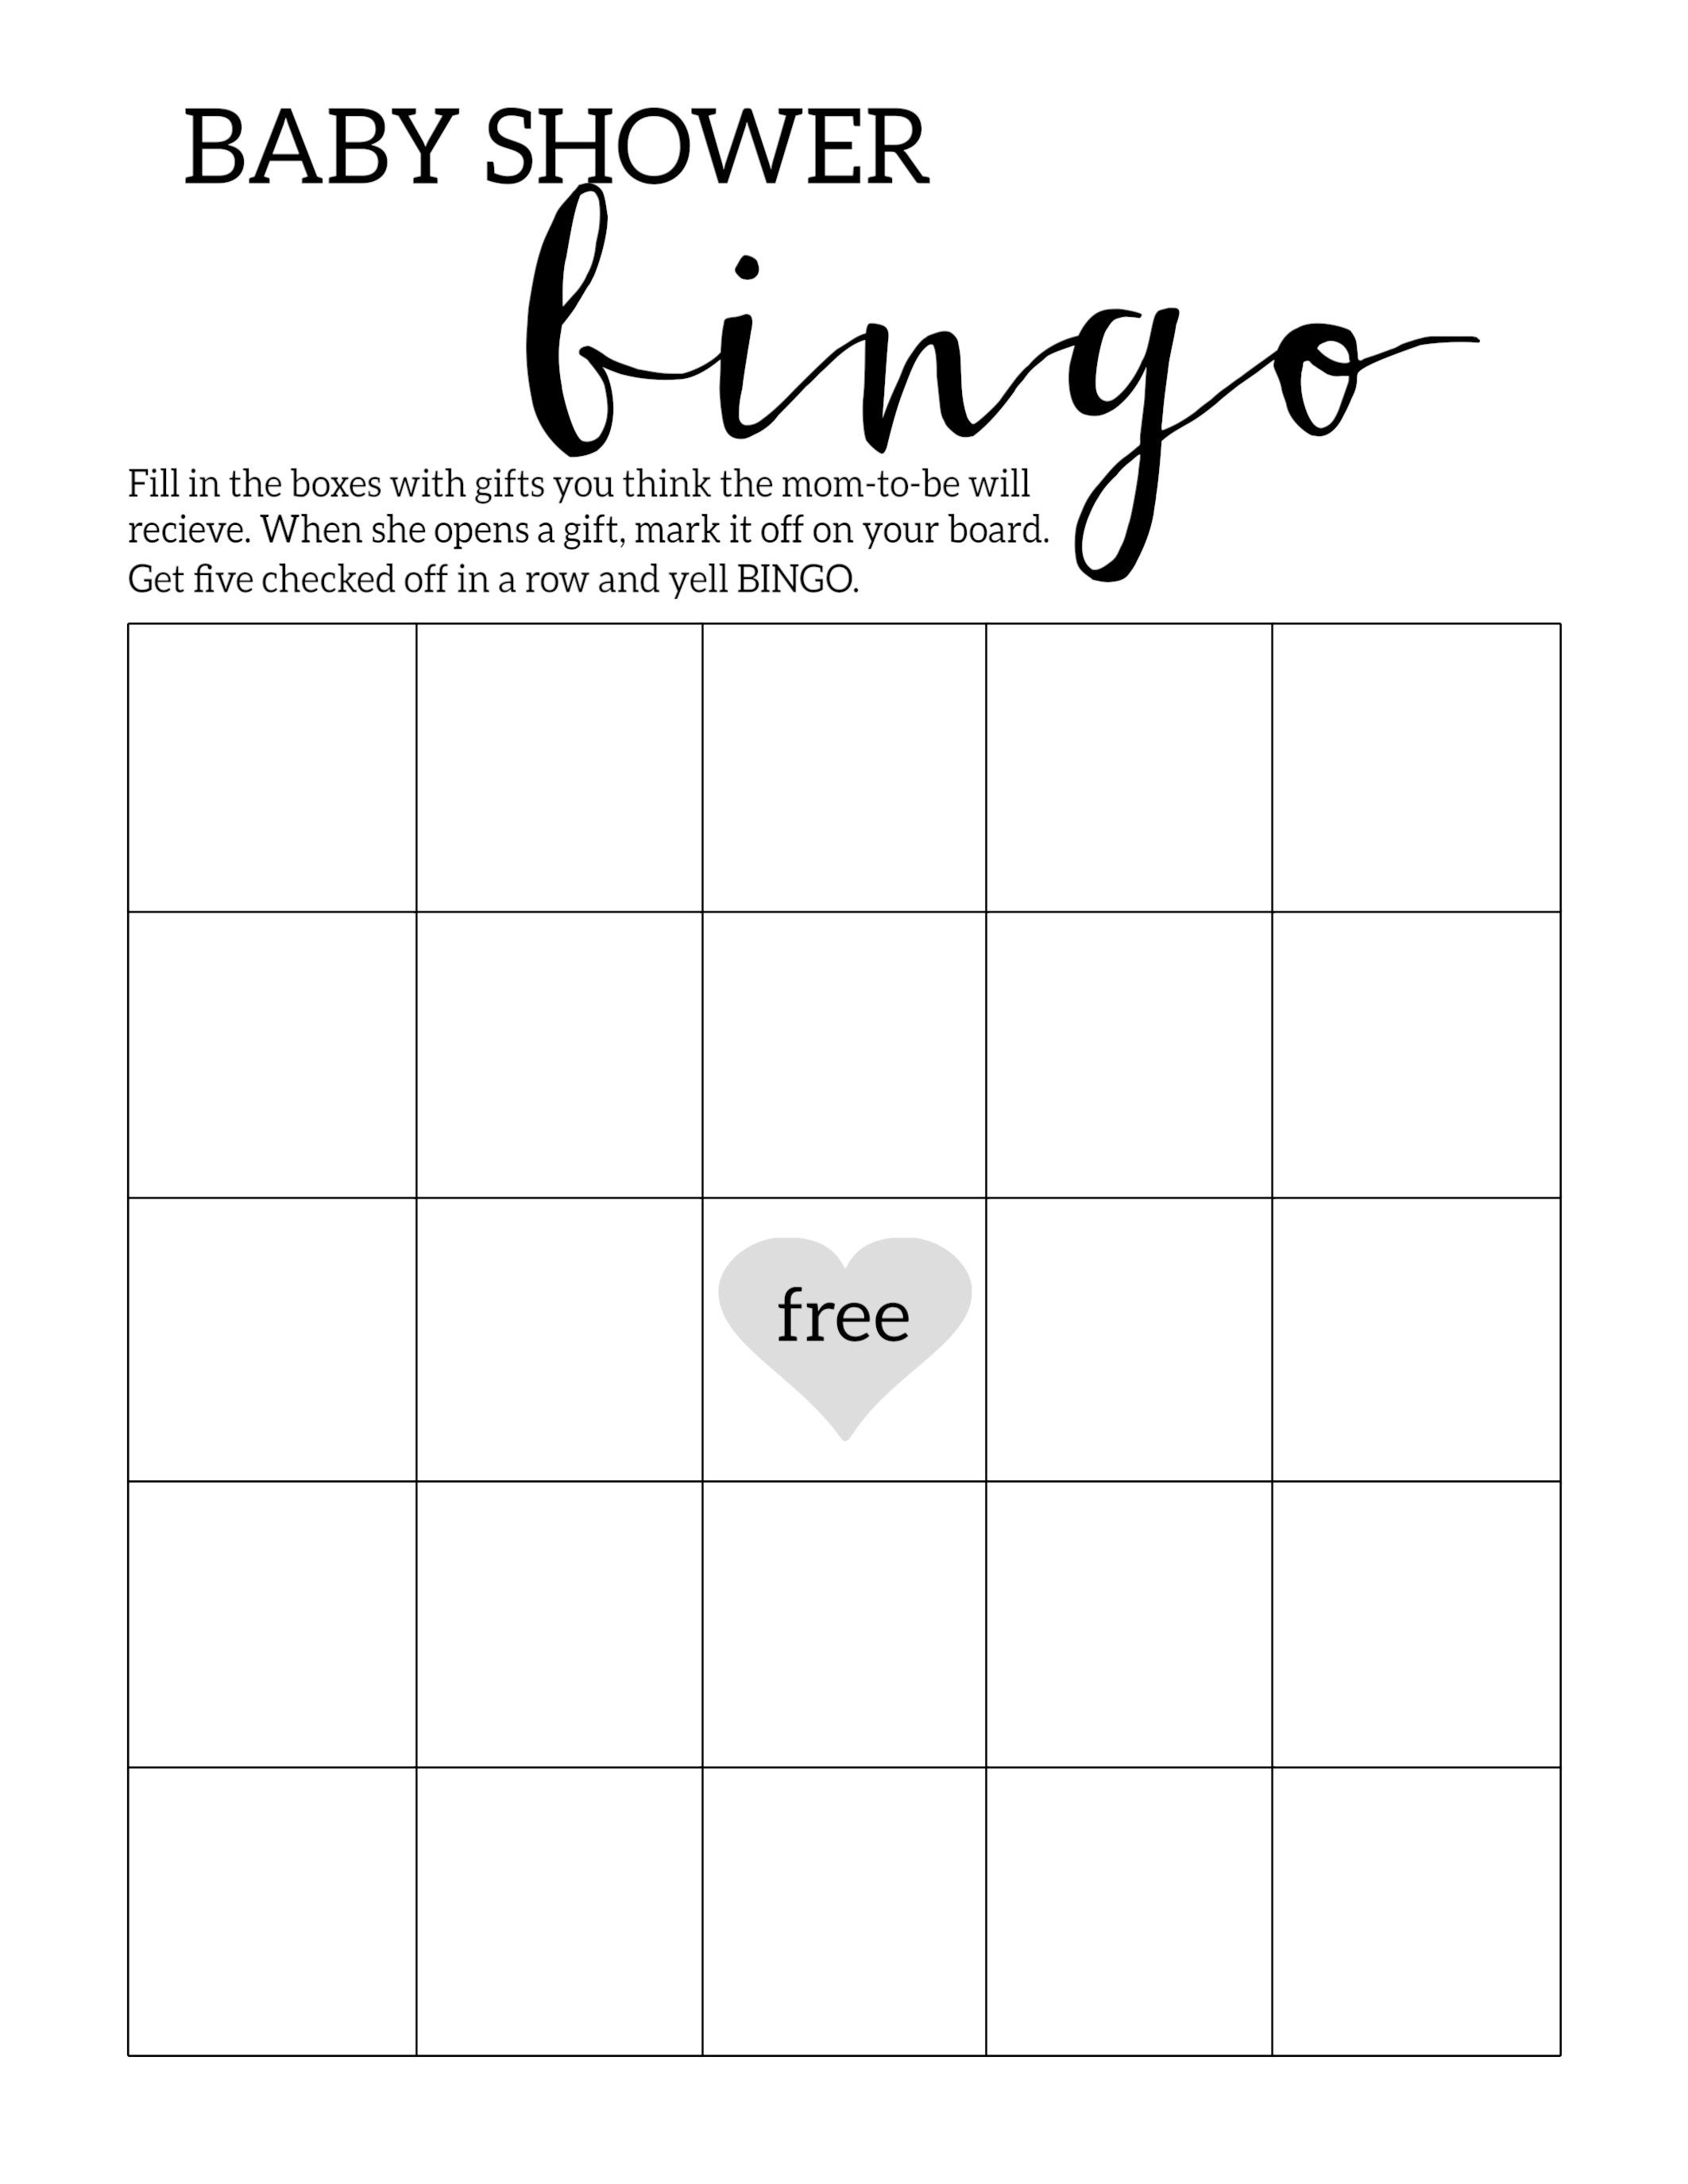 Baby Shower Bingo Printable Cards Template | Baby Shower | Baby - Baby Bingo Free Printable Template